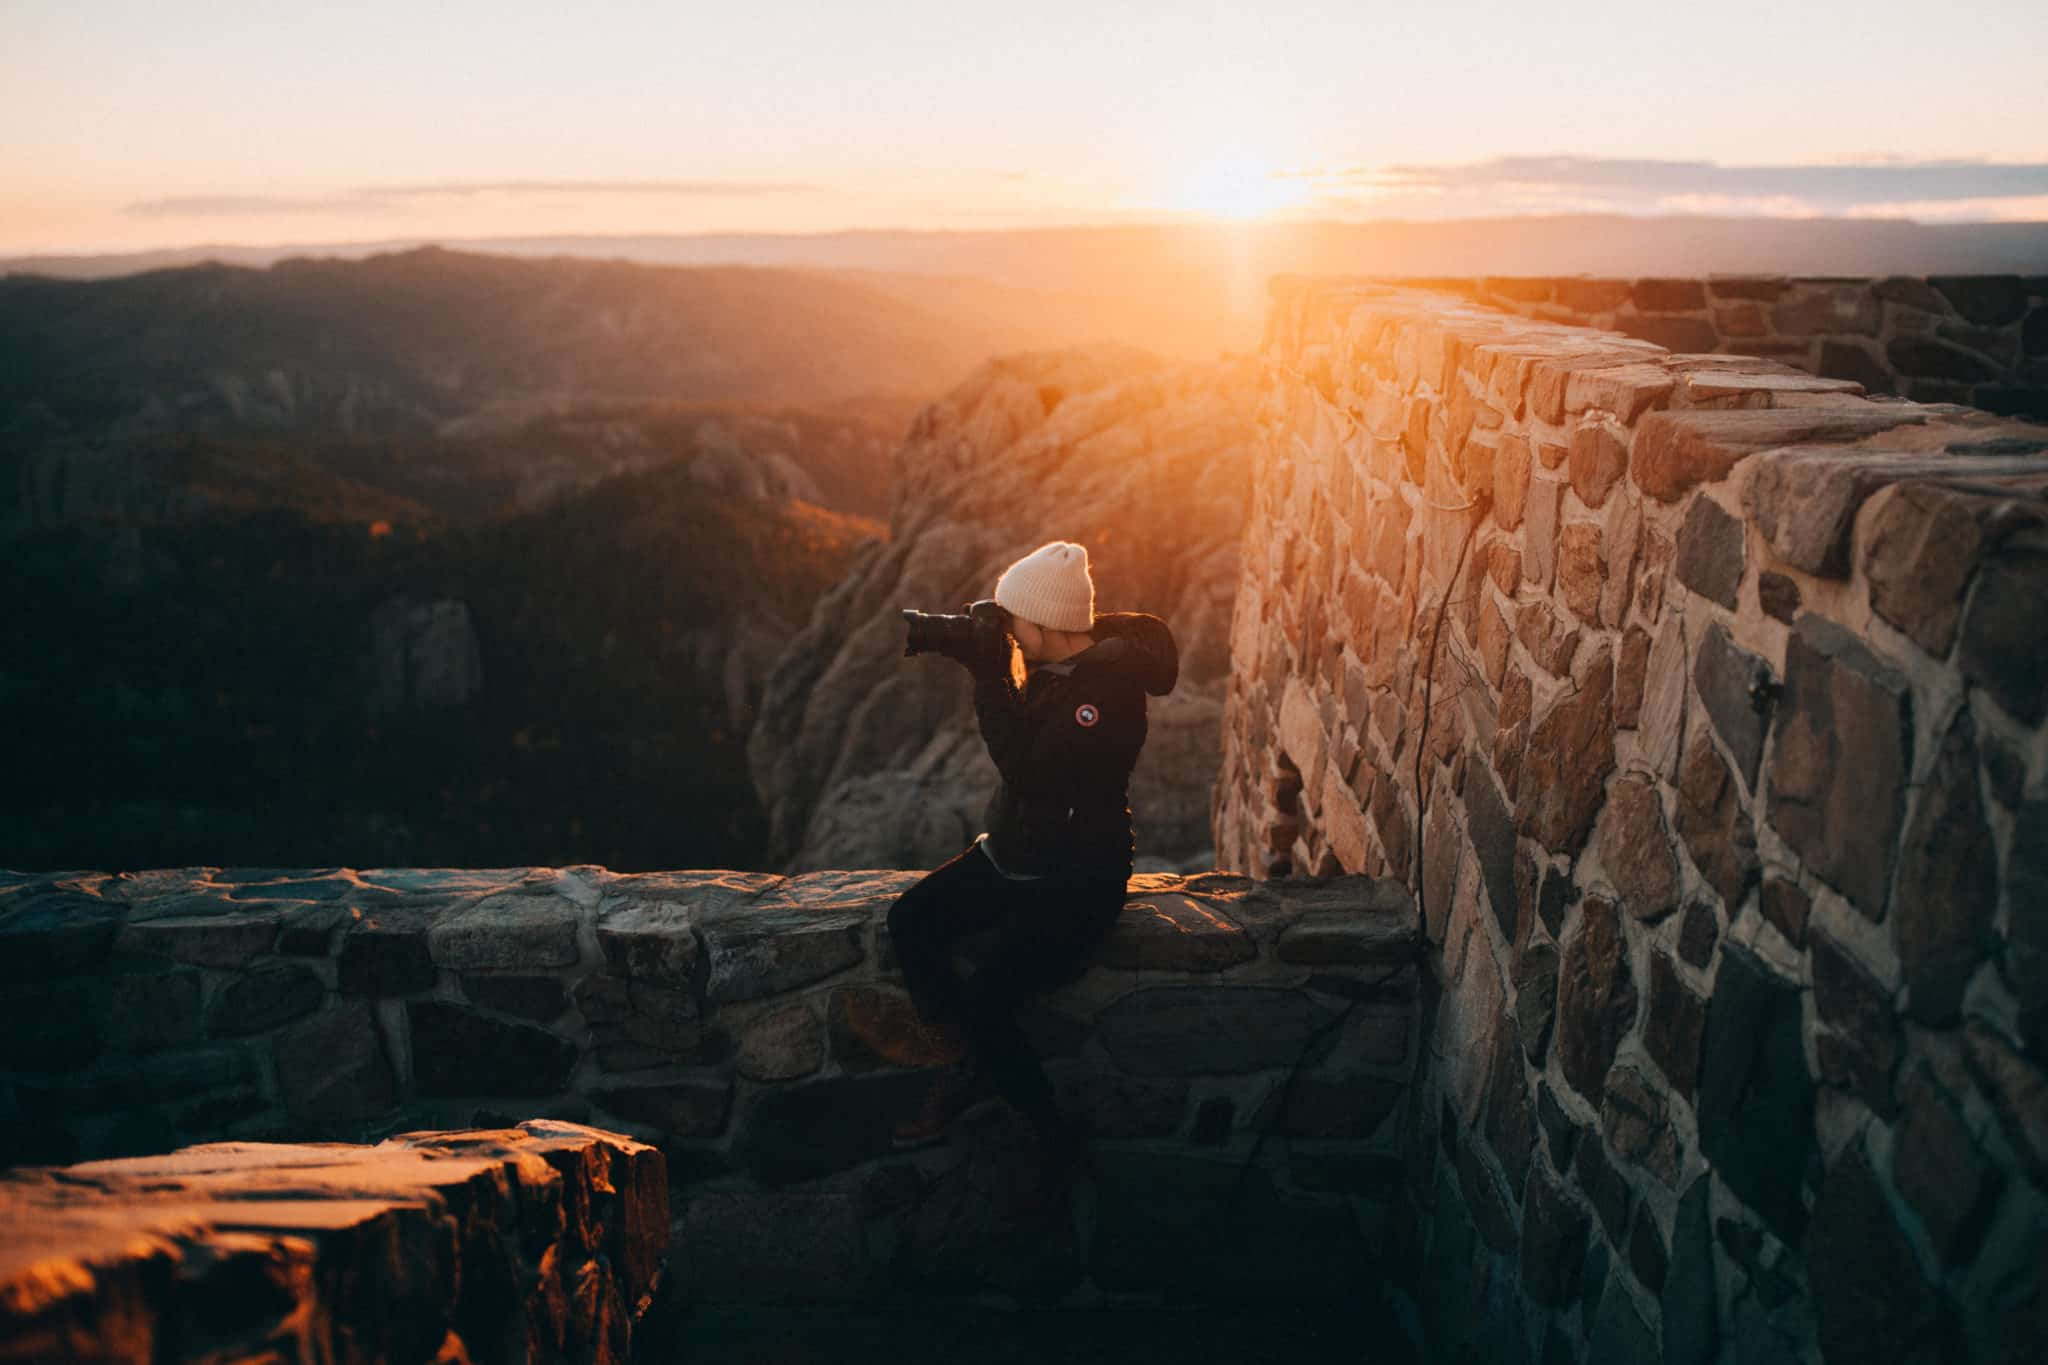 Emily at sunset on Black Elk Peak, South Dakota